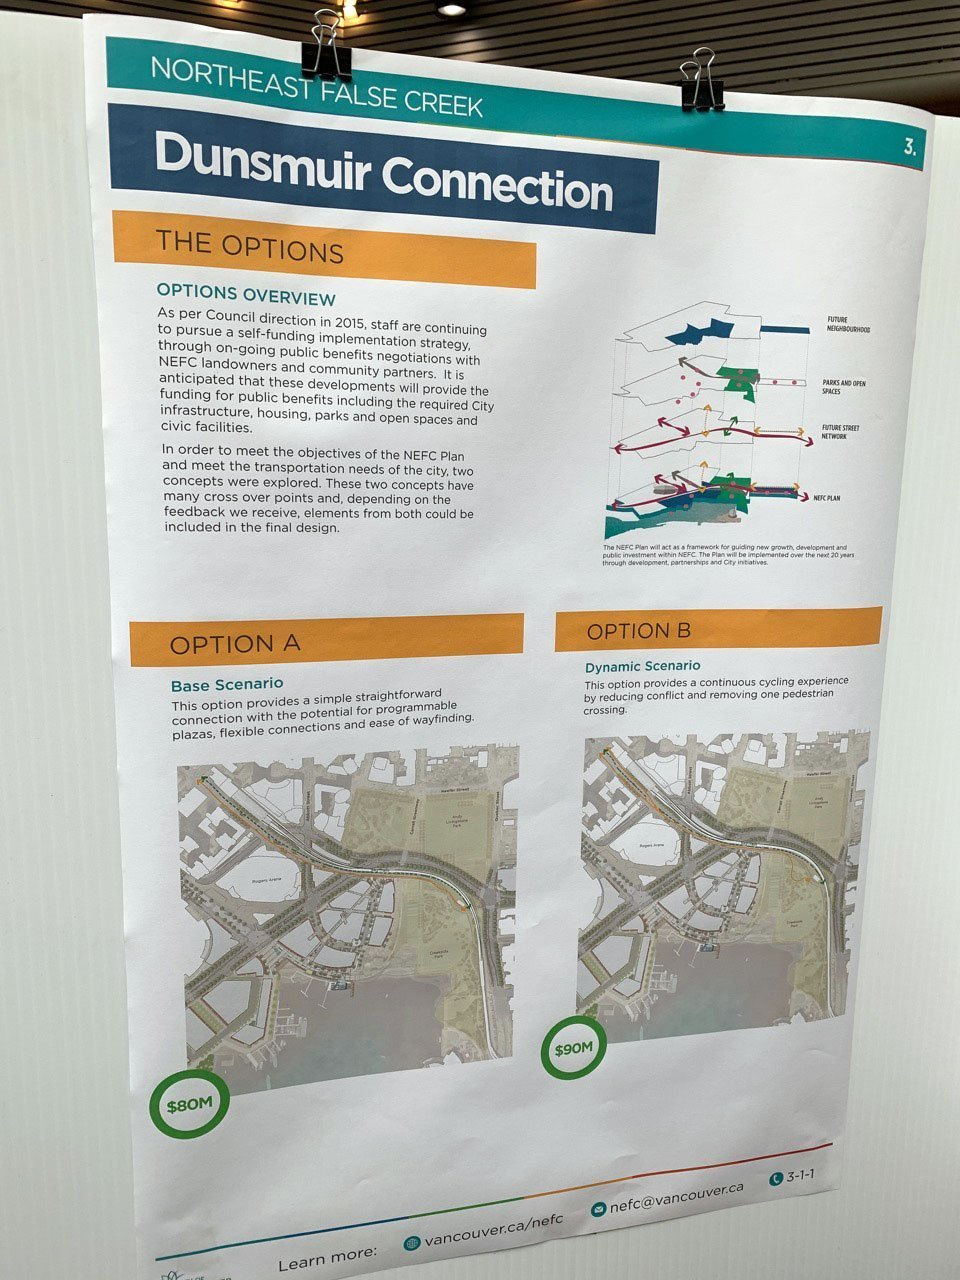 Dunsmuir Connection cost